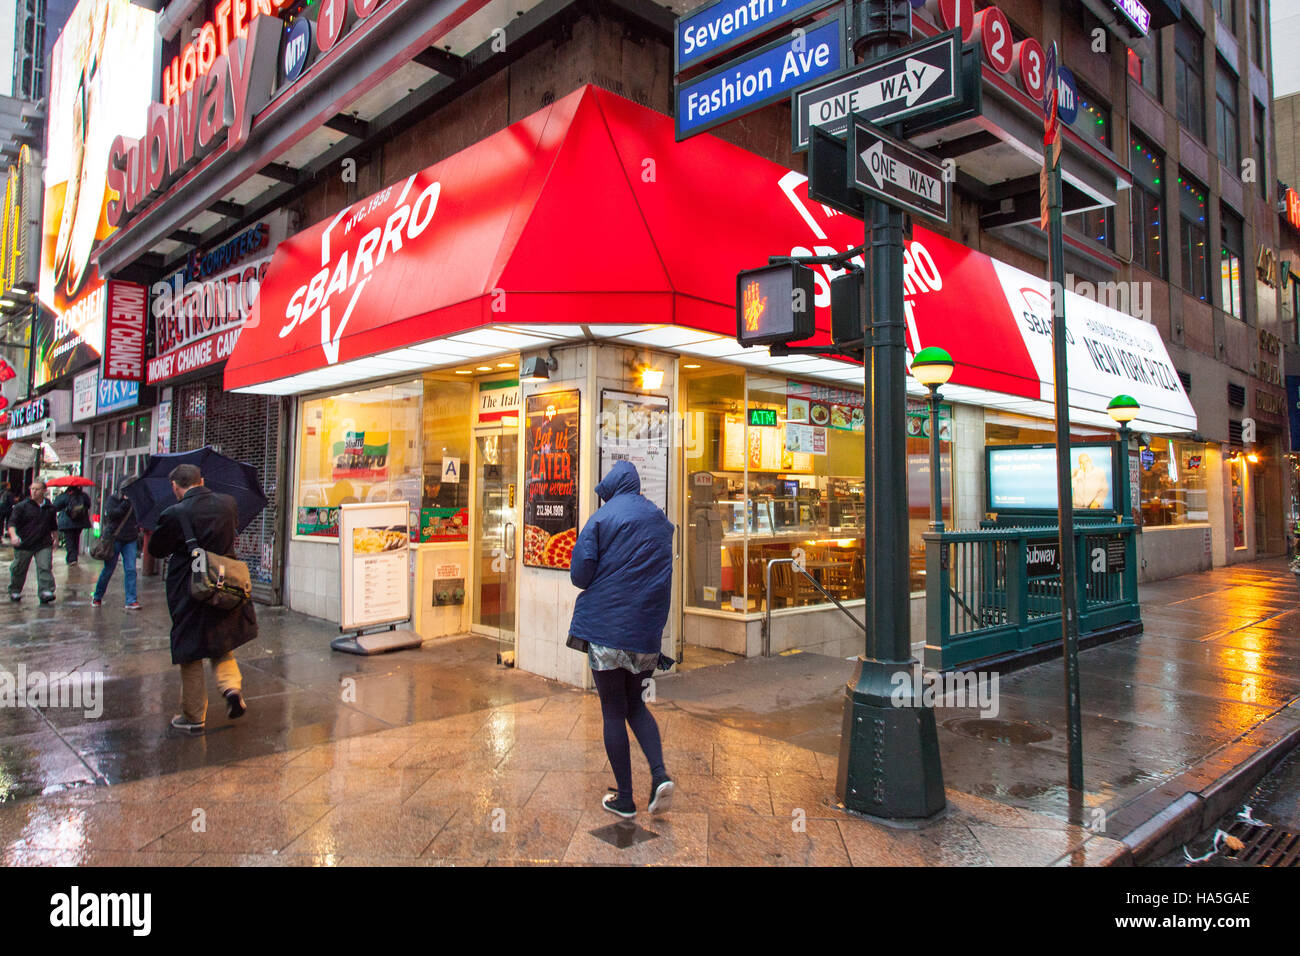 Seventh Avenue Stock Photos Seventh Avenue Stock Images Alamy